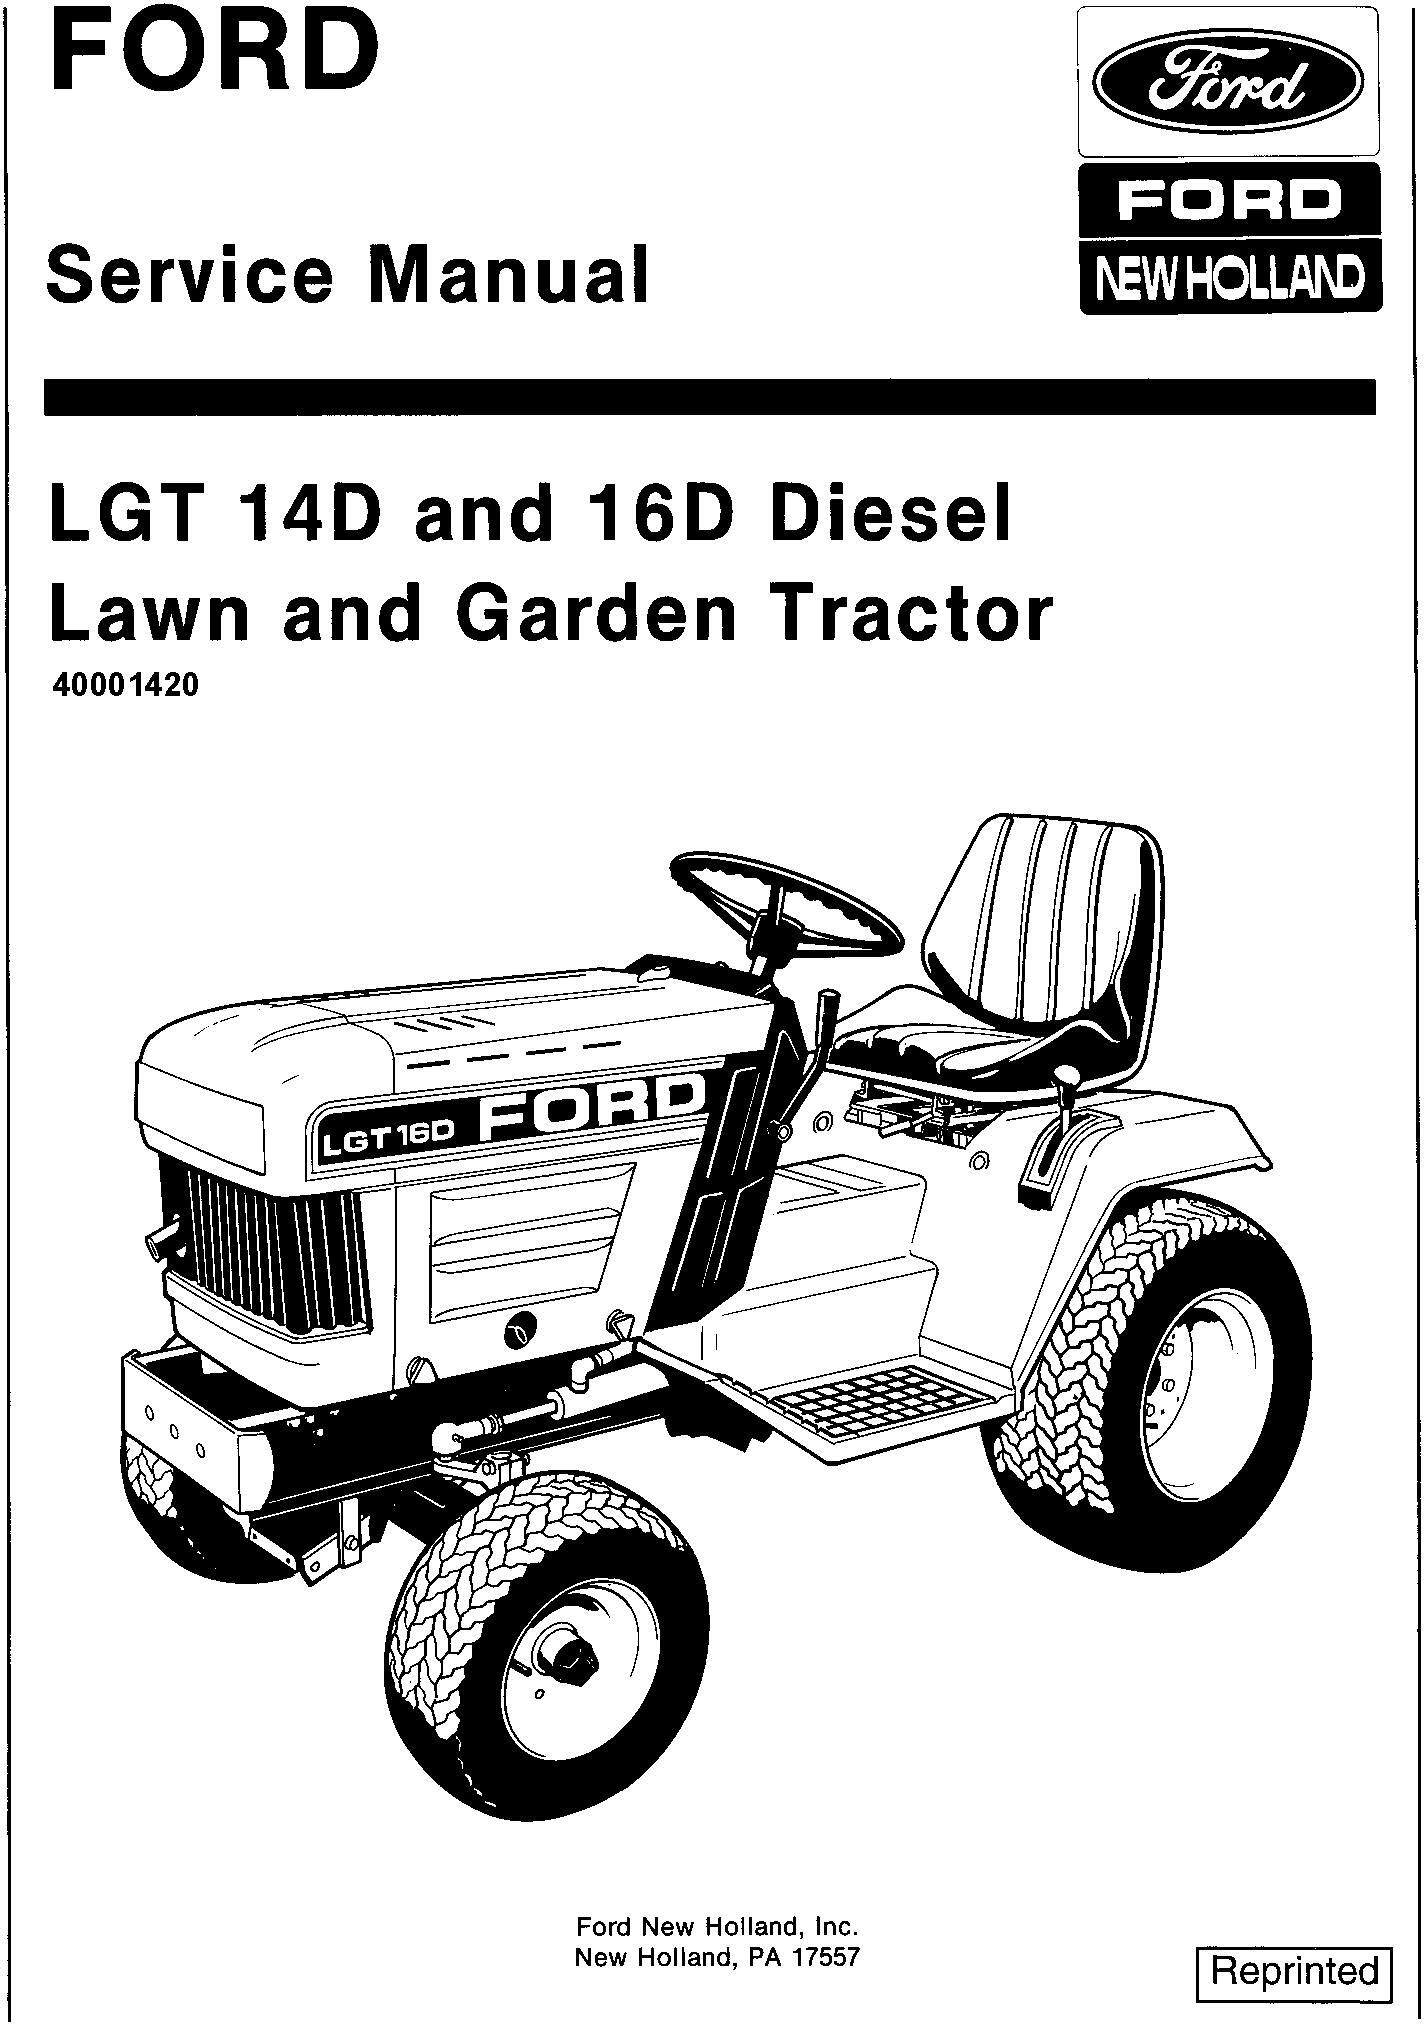 Ford Lgt14d Lgt16dsel Lawn And Garden Tractor With